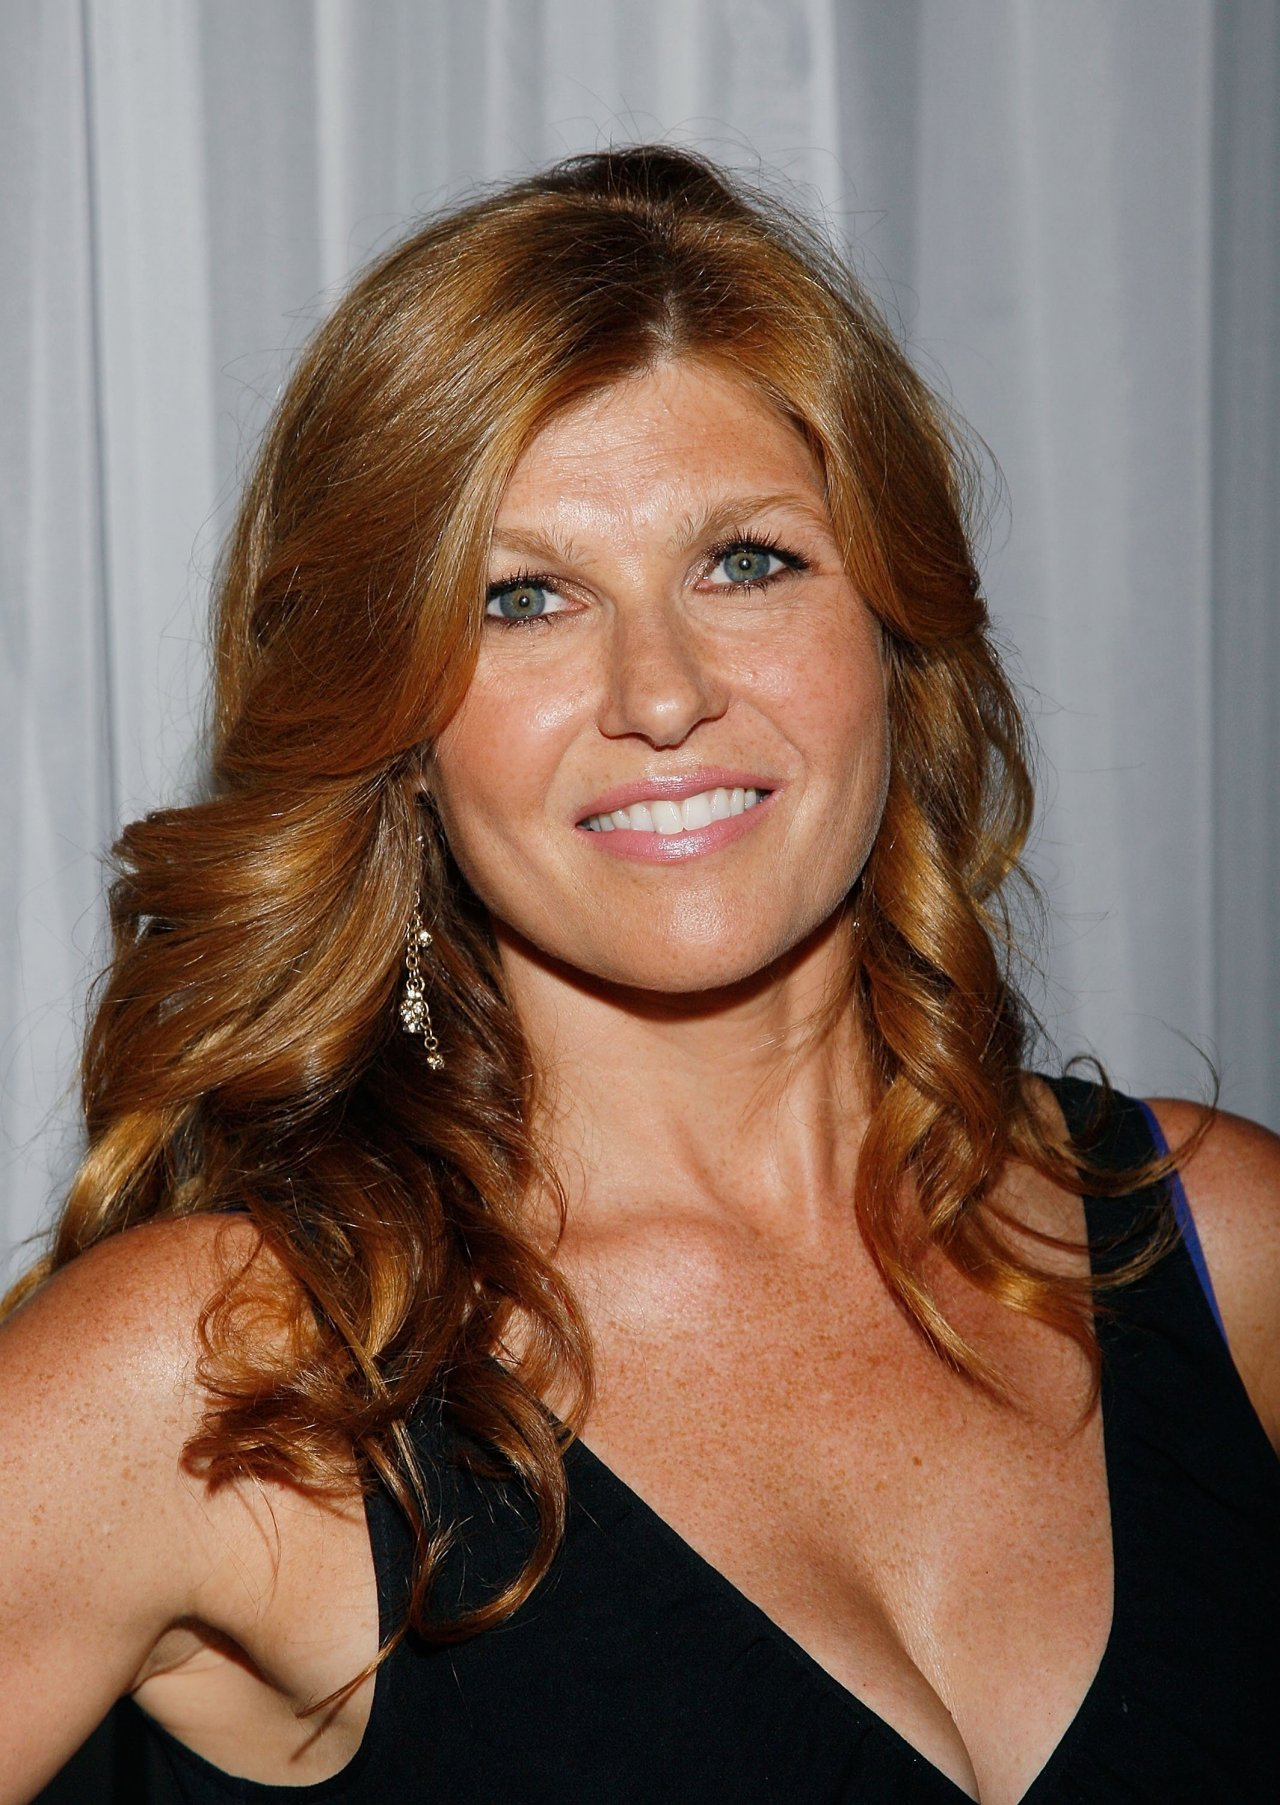 connie britton hd wallpapers free download